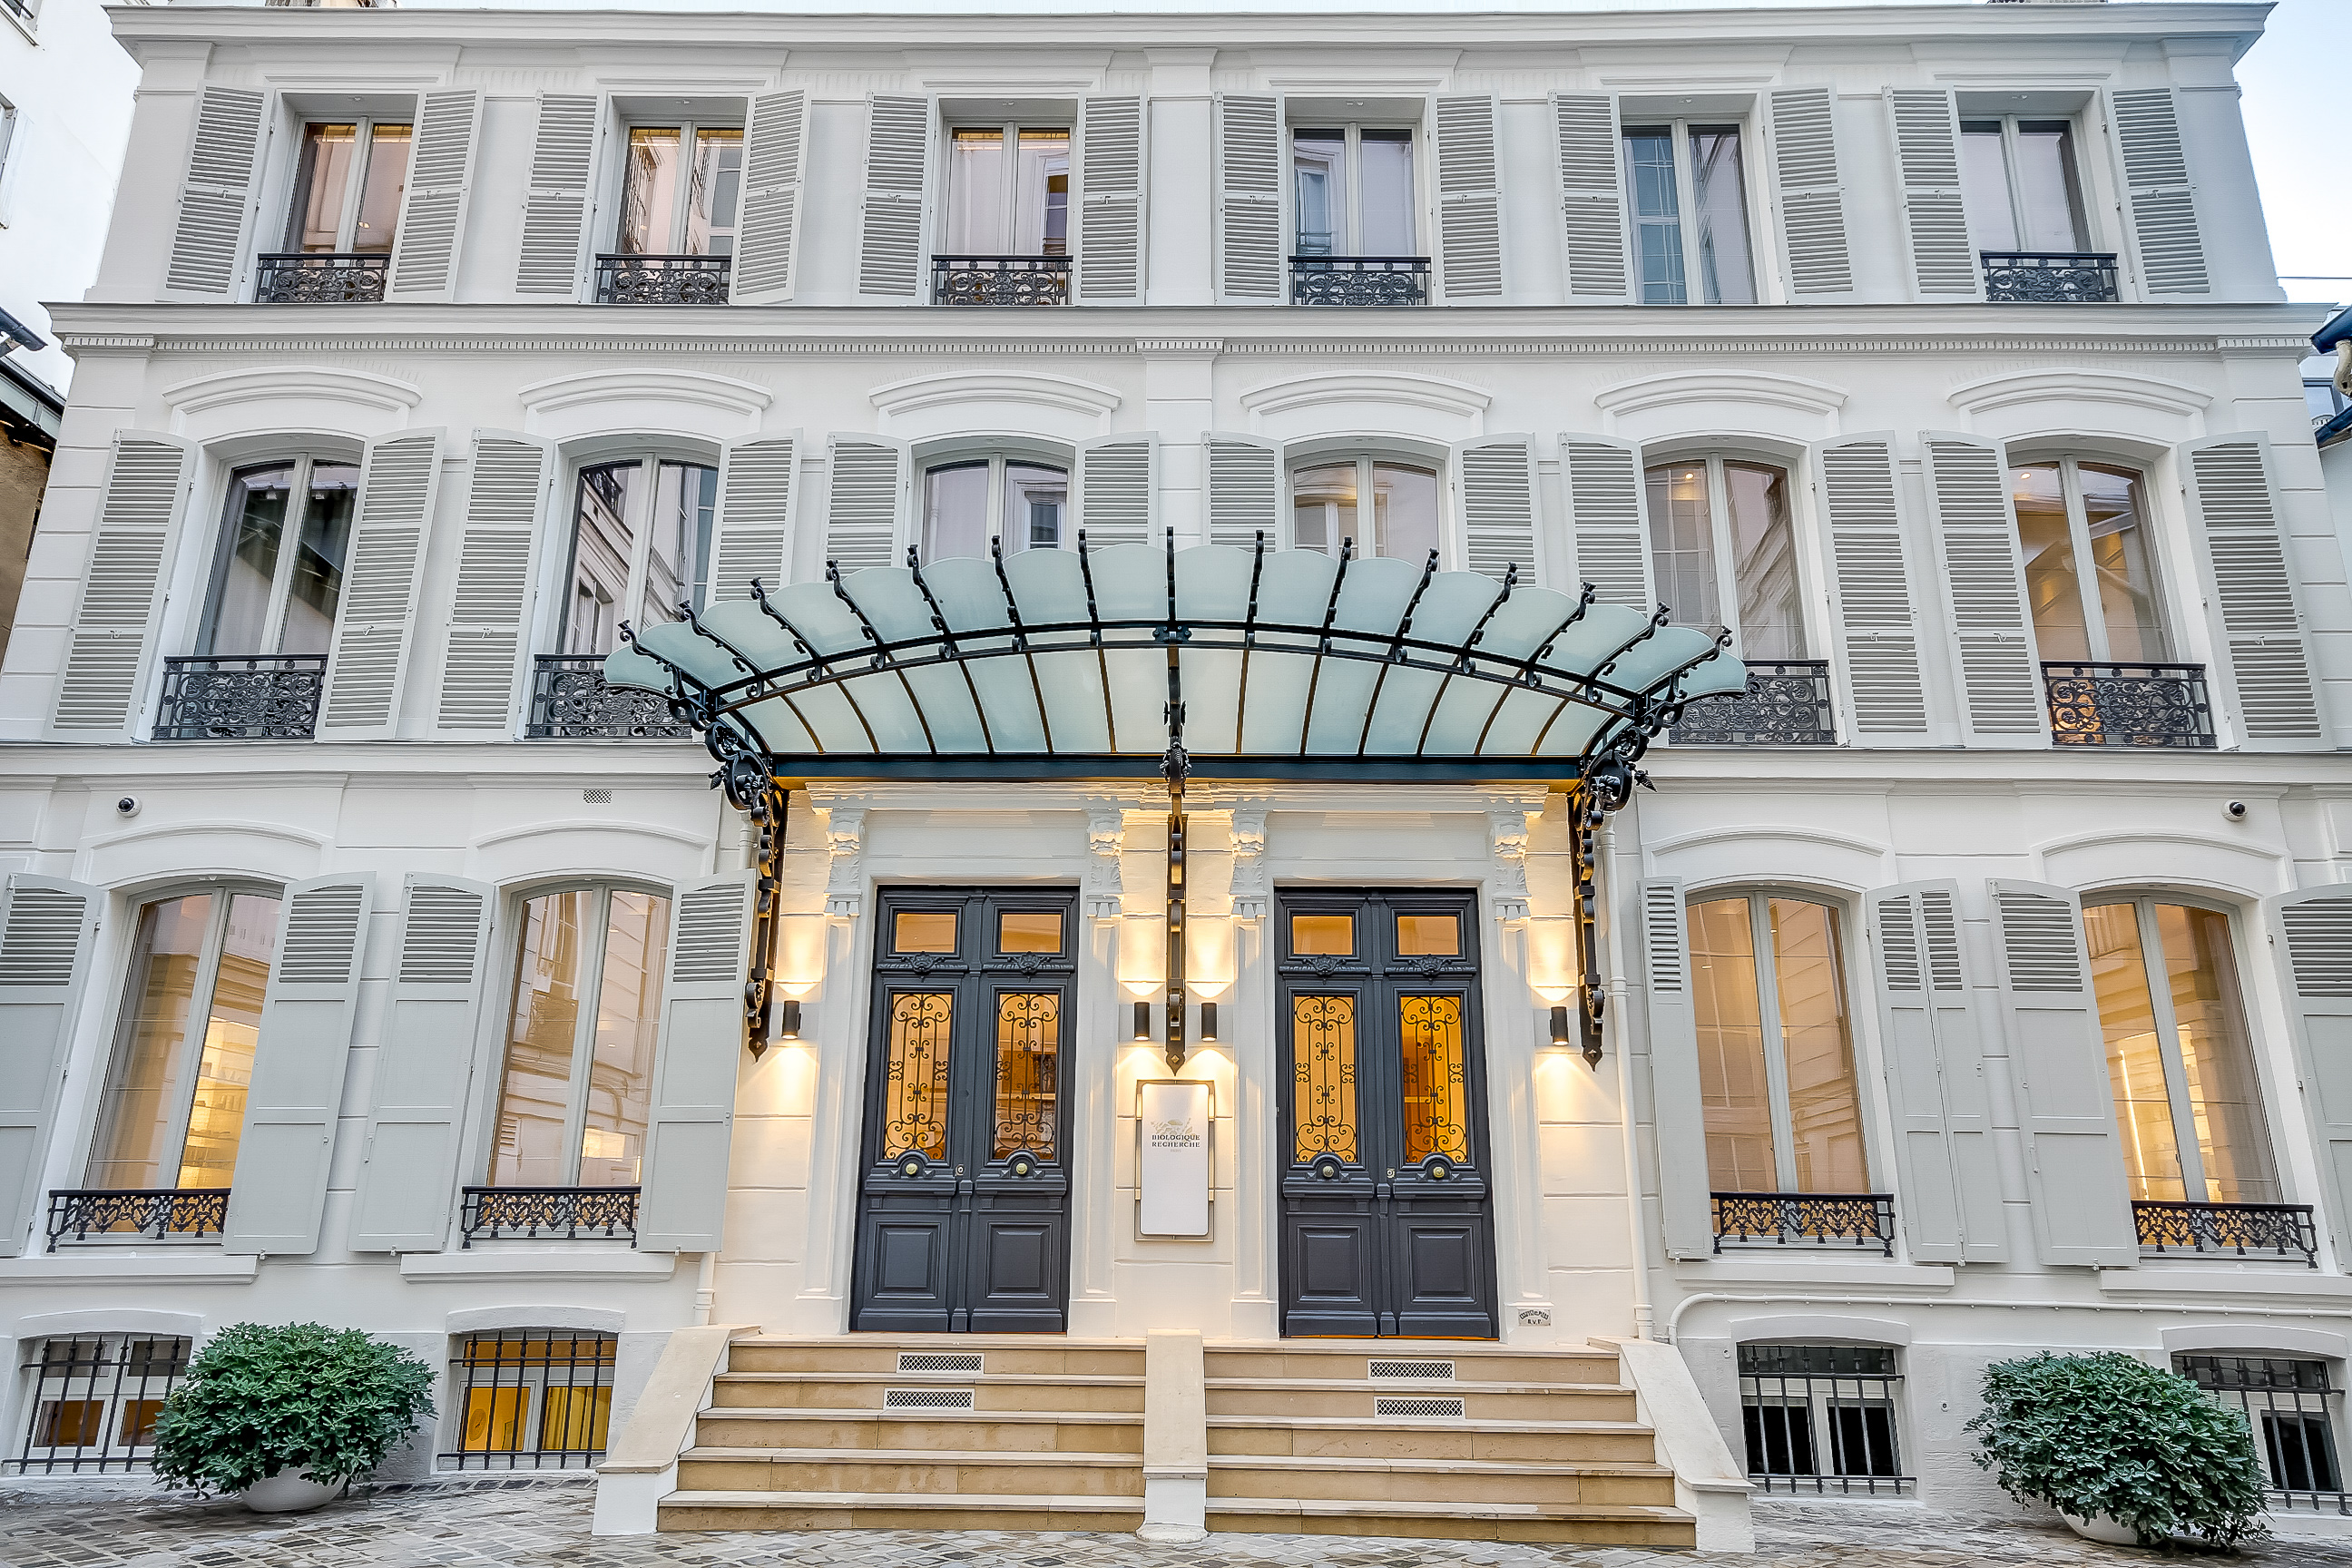 AMBASSADE DE LA BEAUTÉ – PARIS'S BEST KEPT SECRET